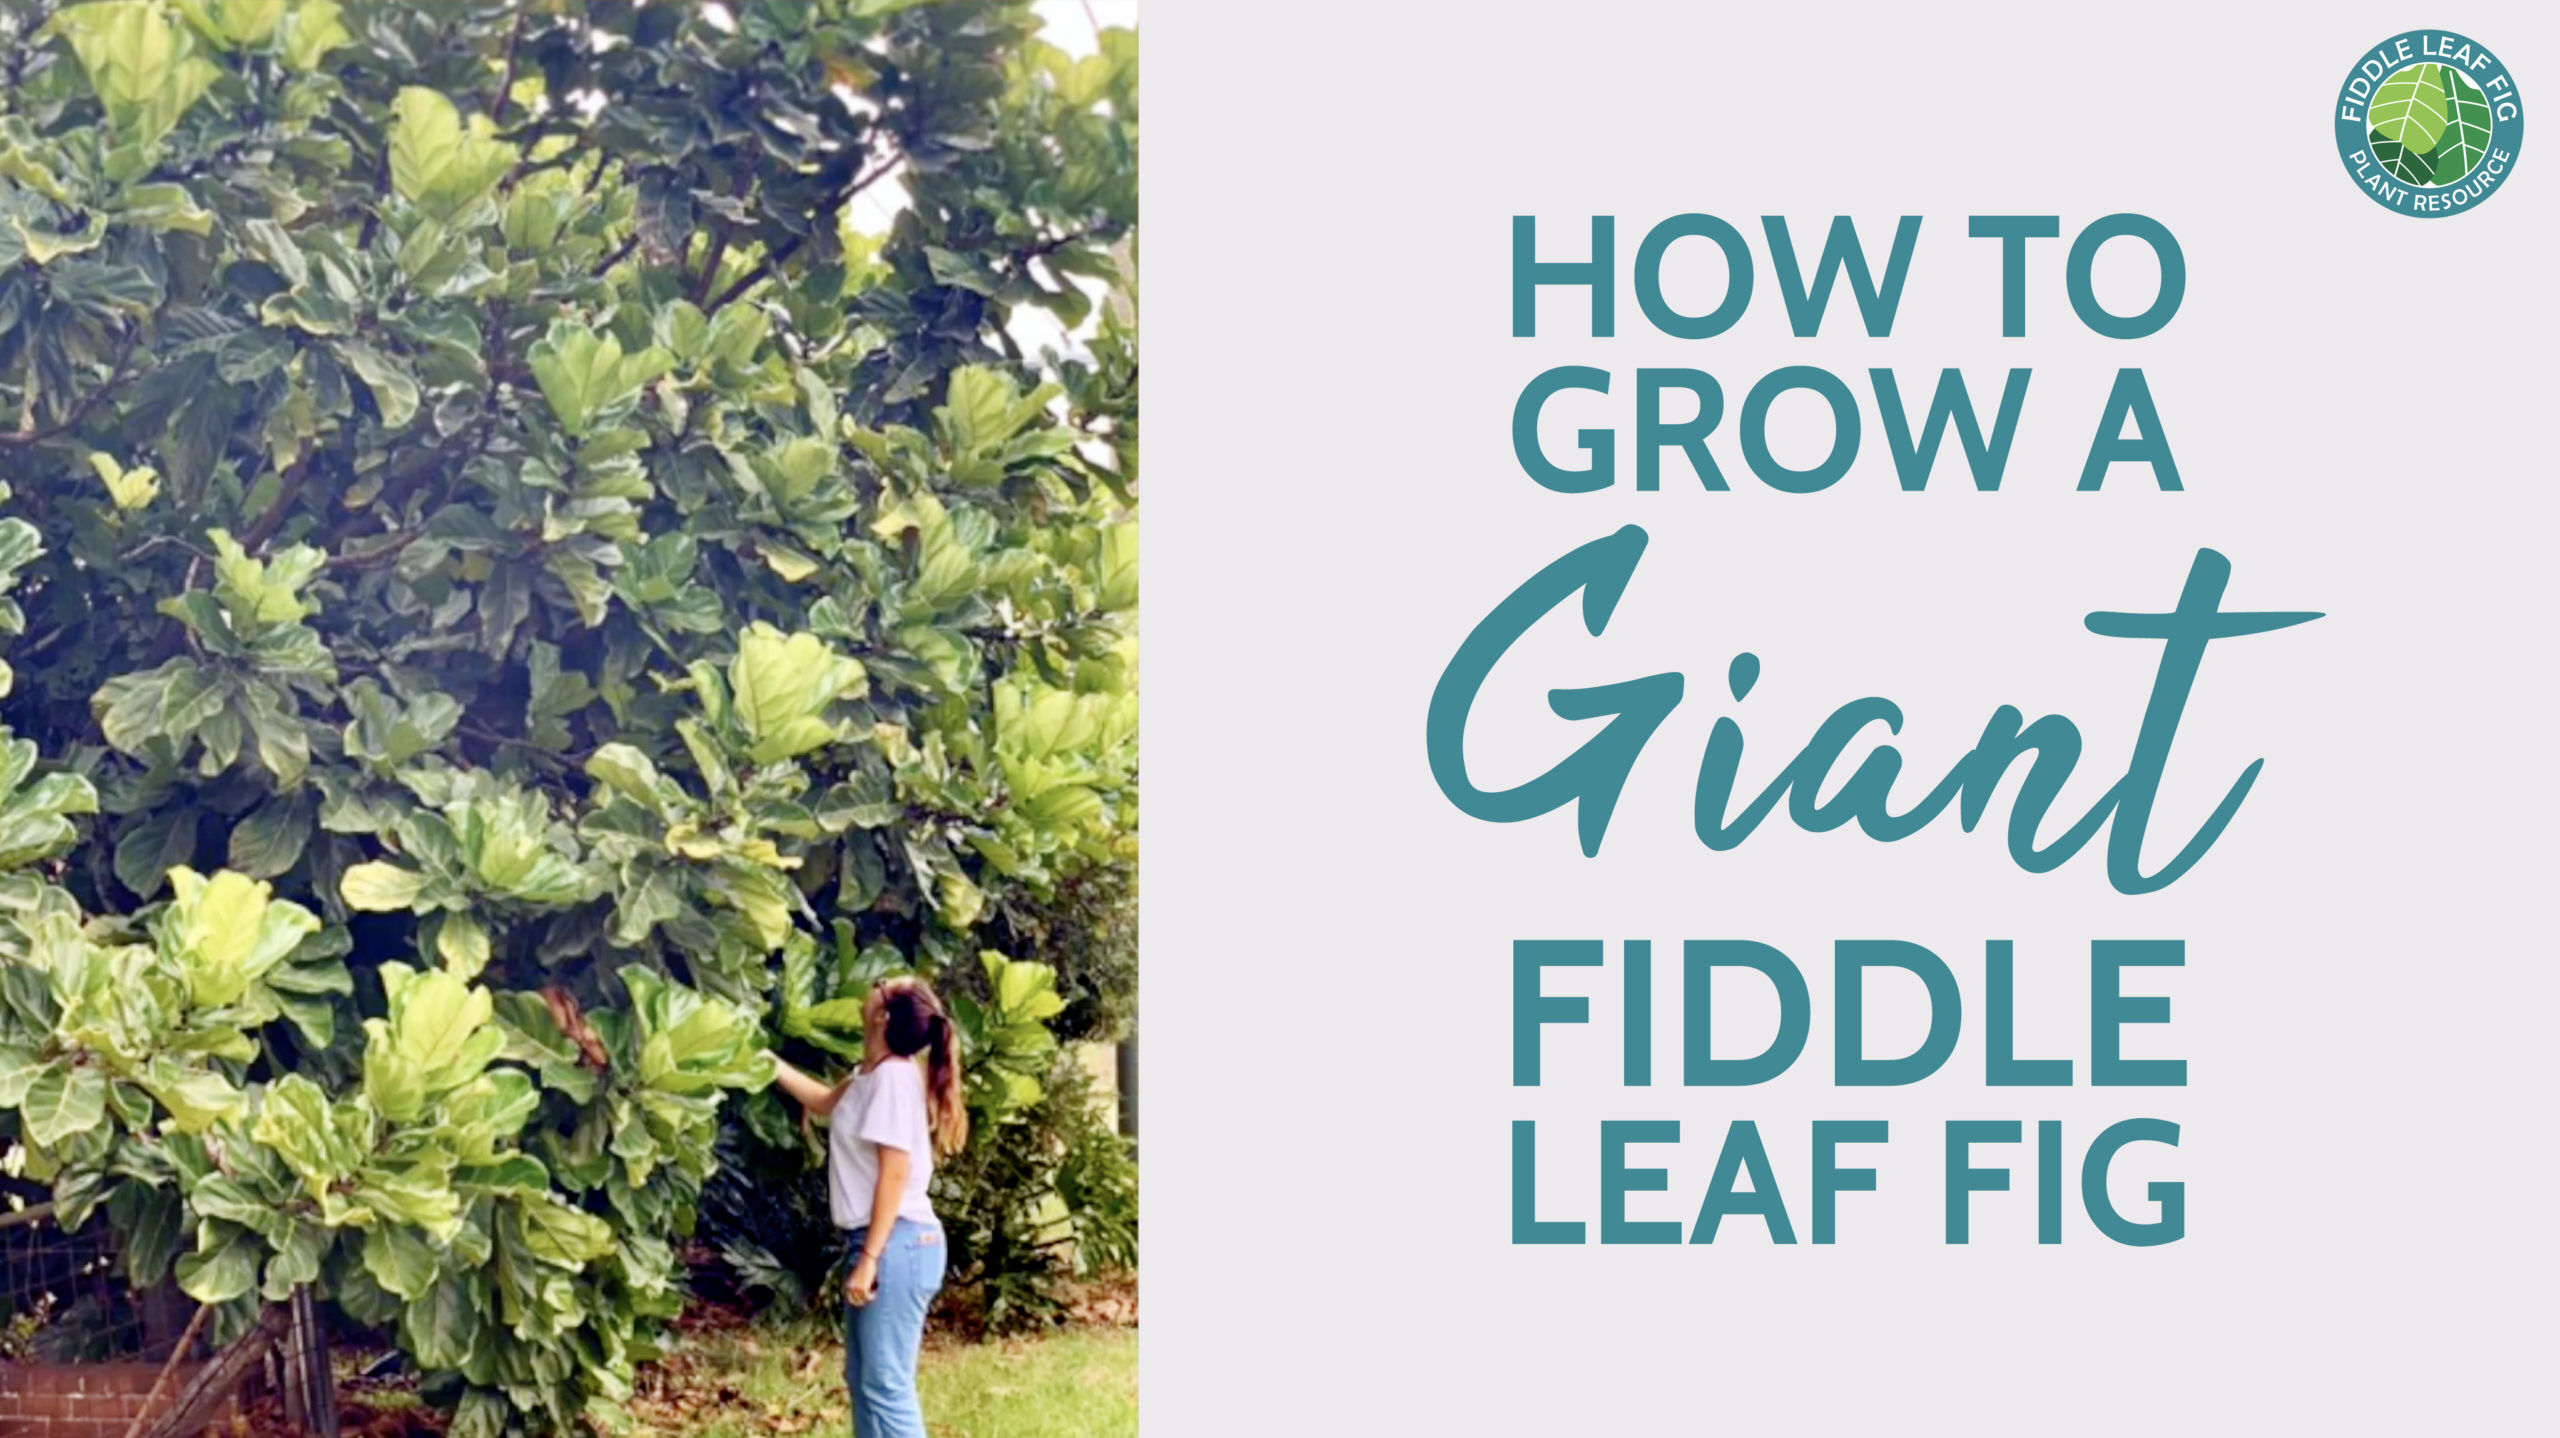 Do you want to grow a giant fiddle leaf fig, but are not sure how? Learn the steps to grow a large, tall, and lush fiddle leaf fig.